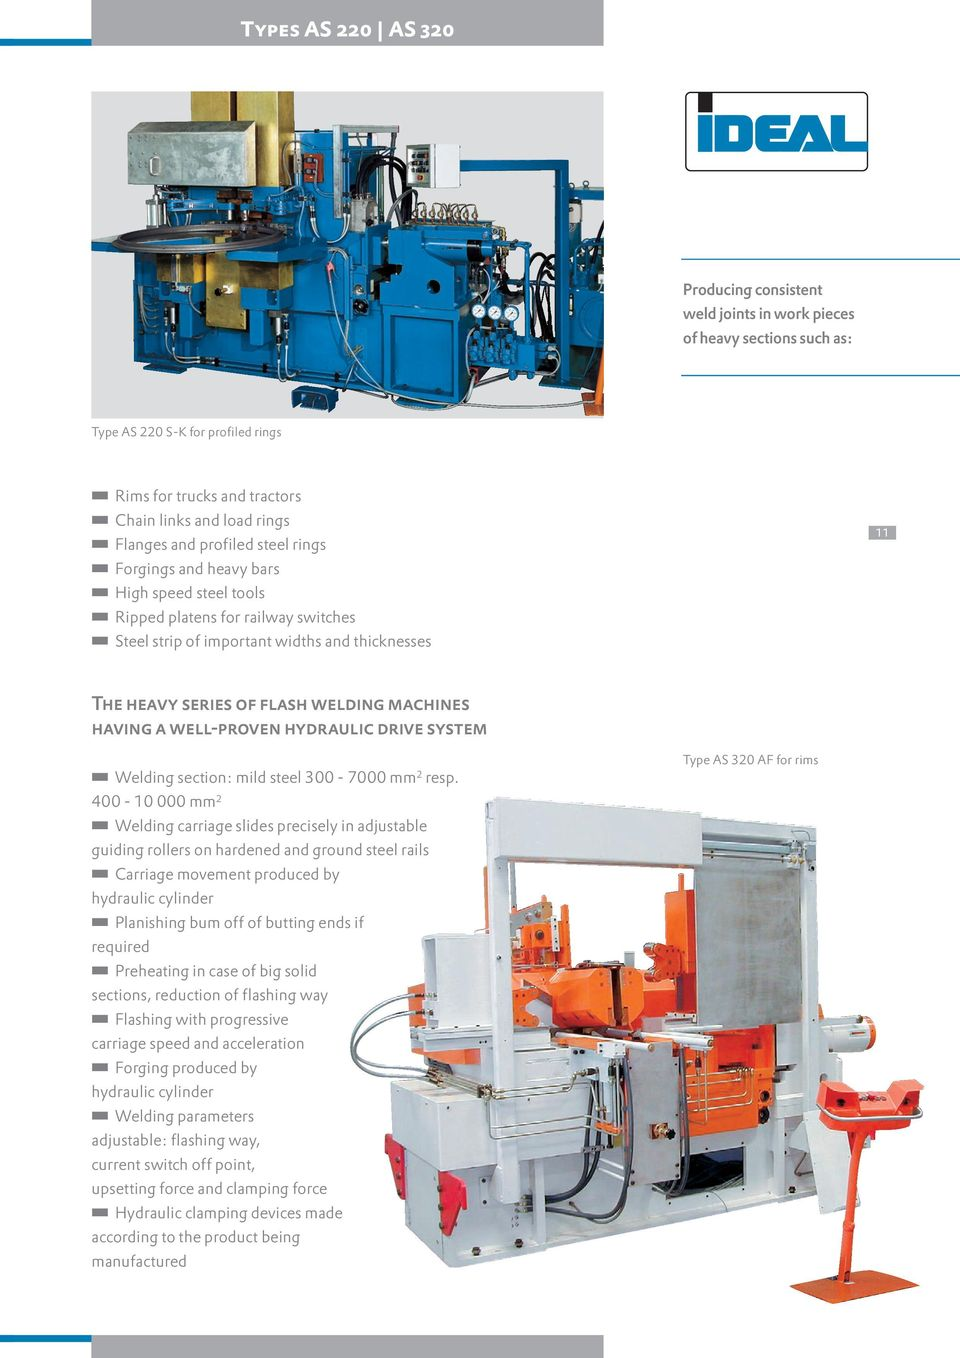 having a well-pro ven hydraulic drive system Welding section: mild steel 300-7000 mm 2 resp.